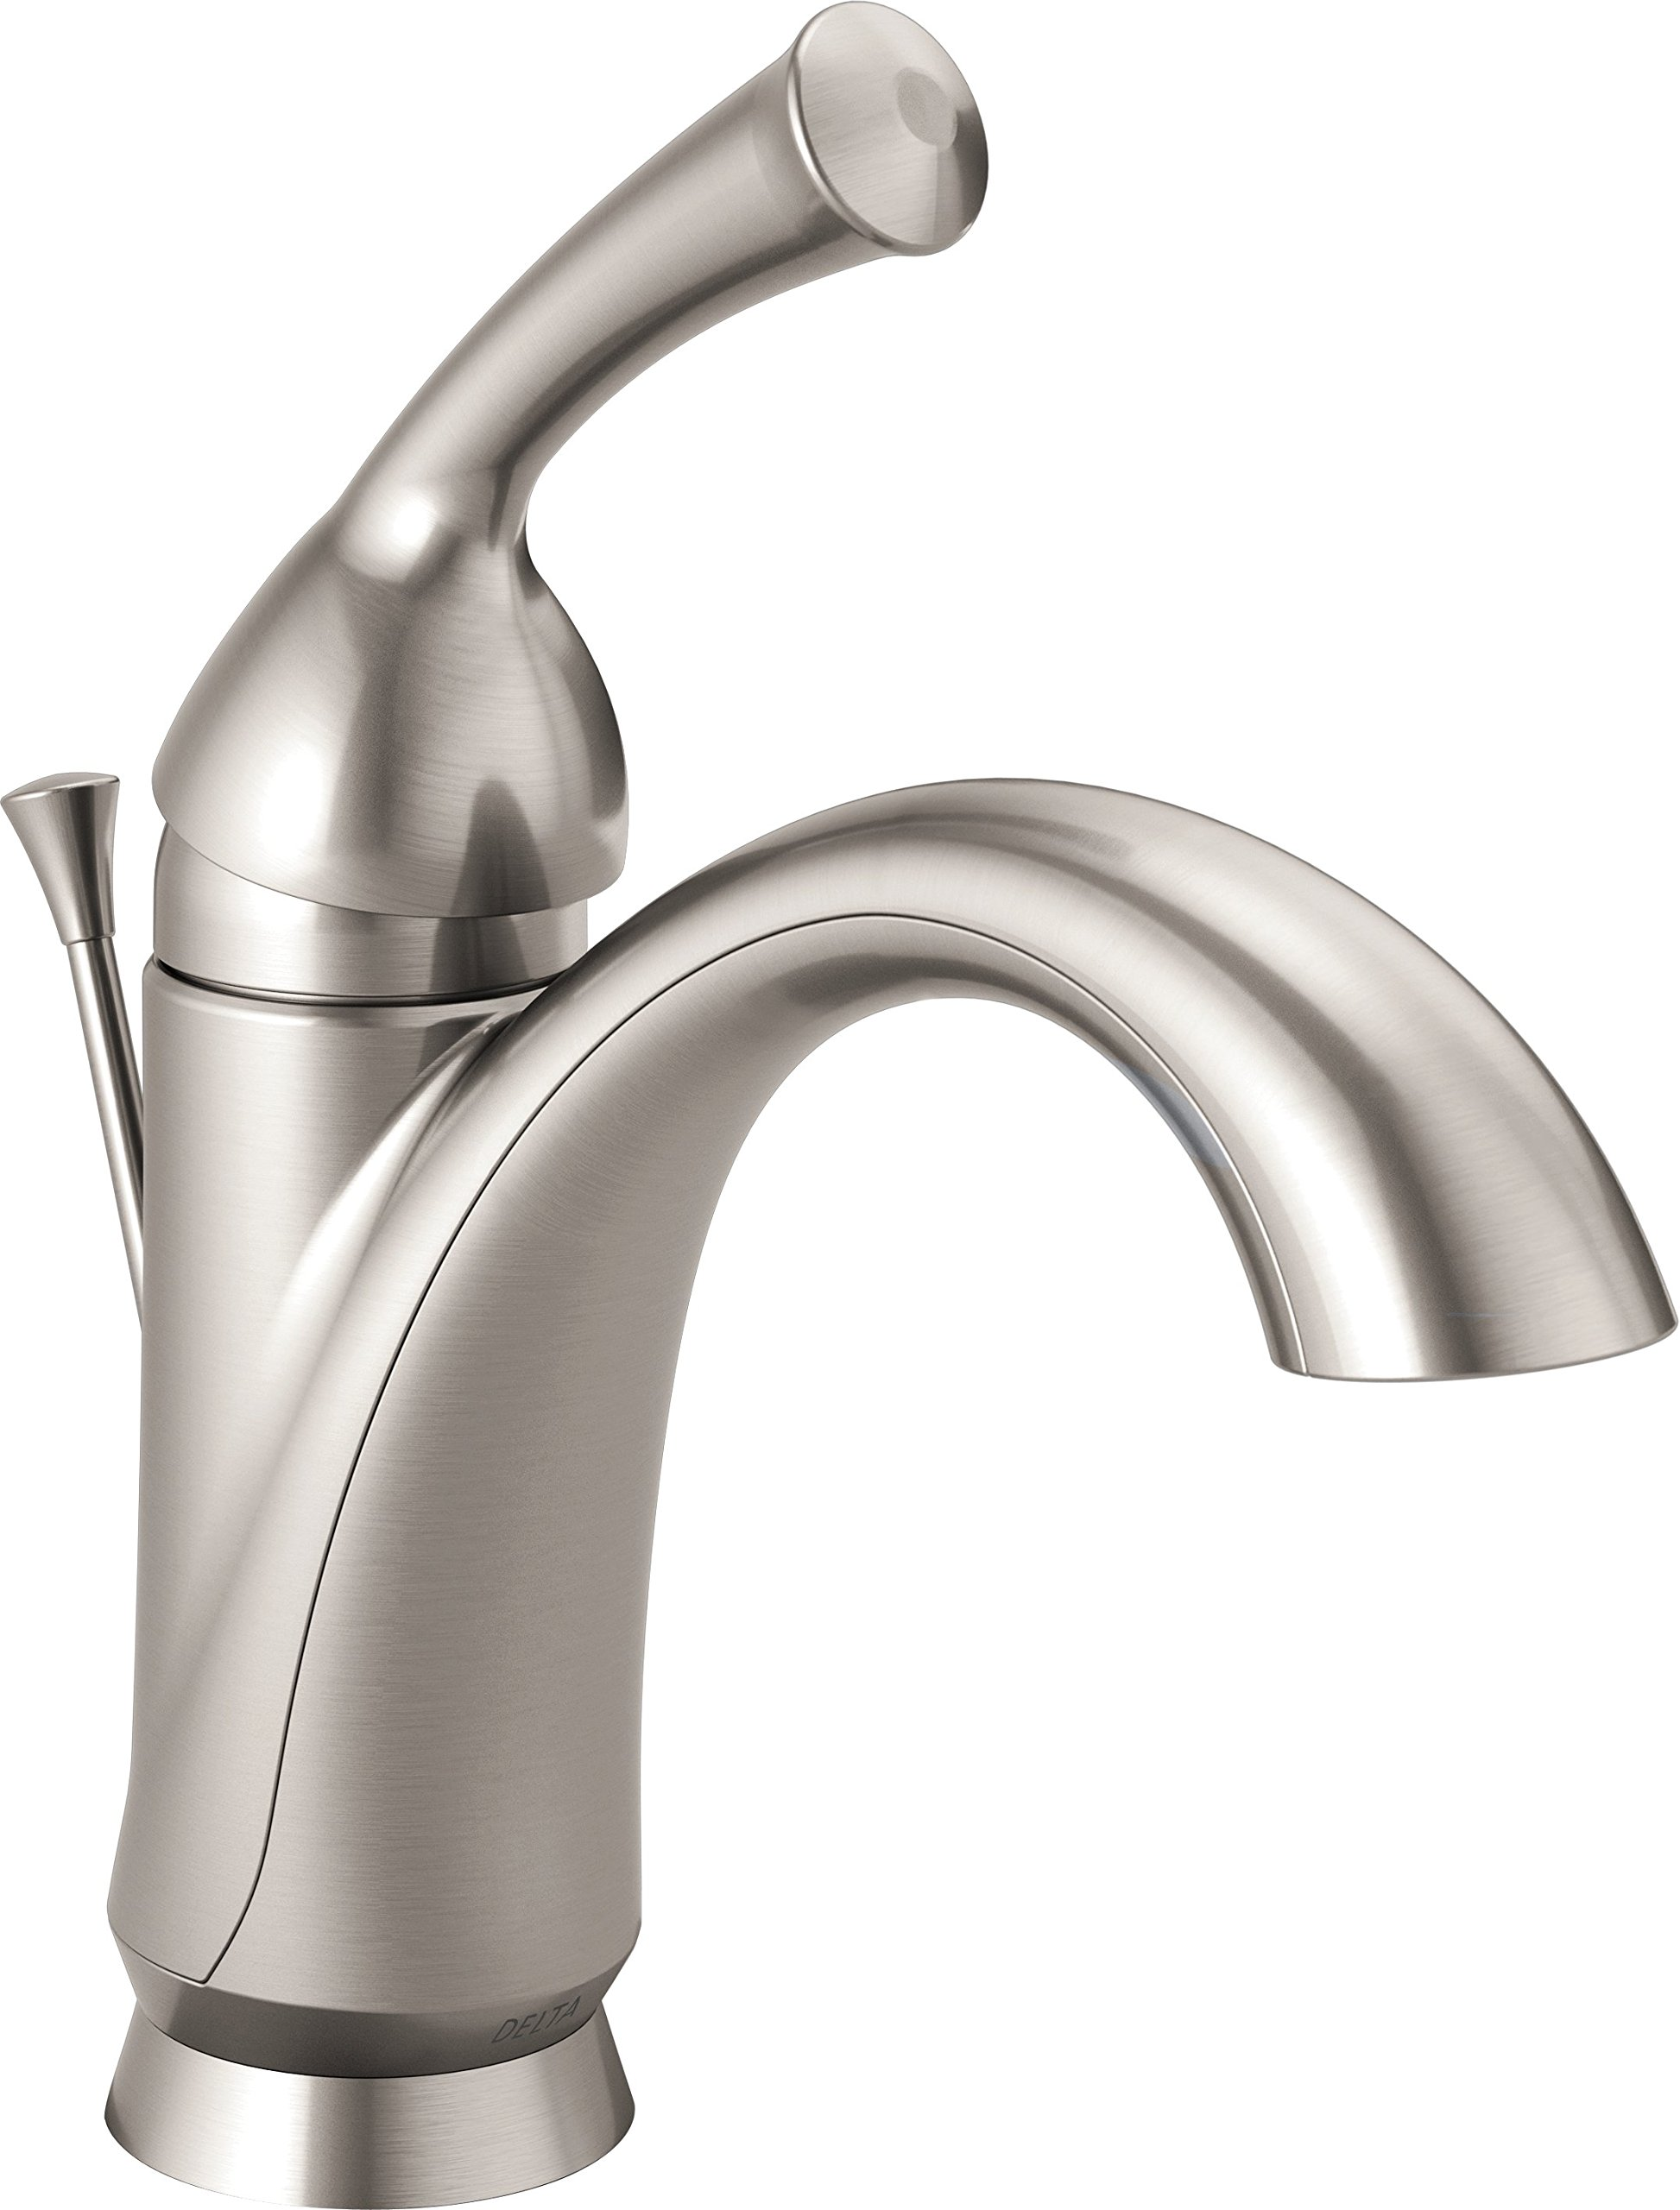 Delta Faucet Haywood Single-Handle Bathroom Faucet with Diamond Seal Technology and Drain Assembly, Stainless 15999-SS-DST by DELTA FAUCET